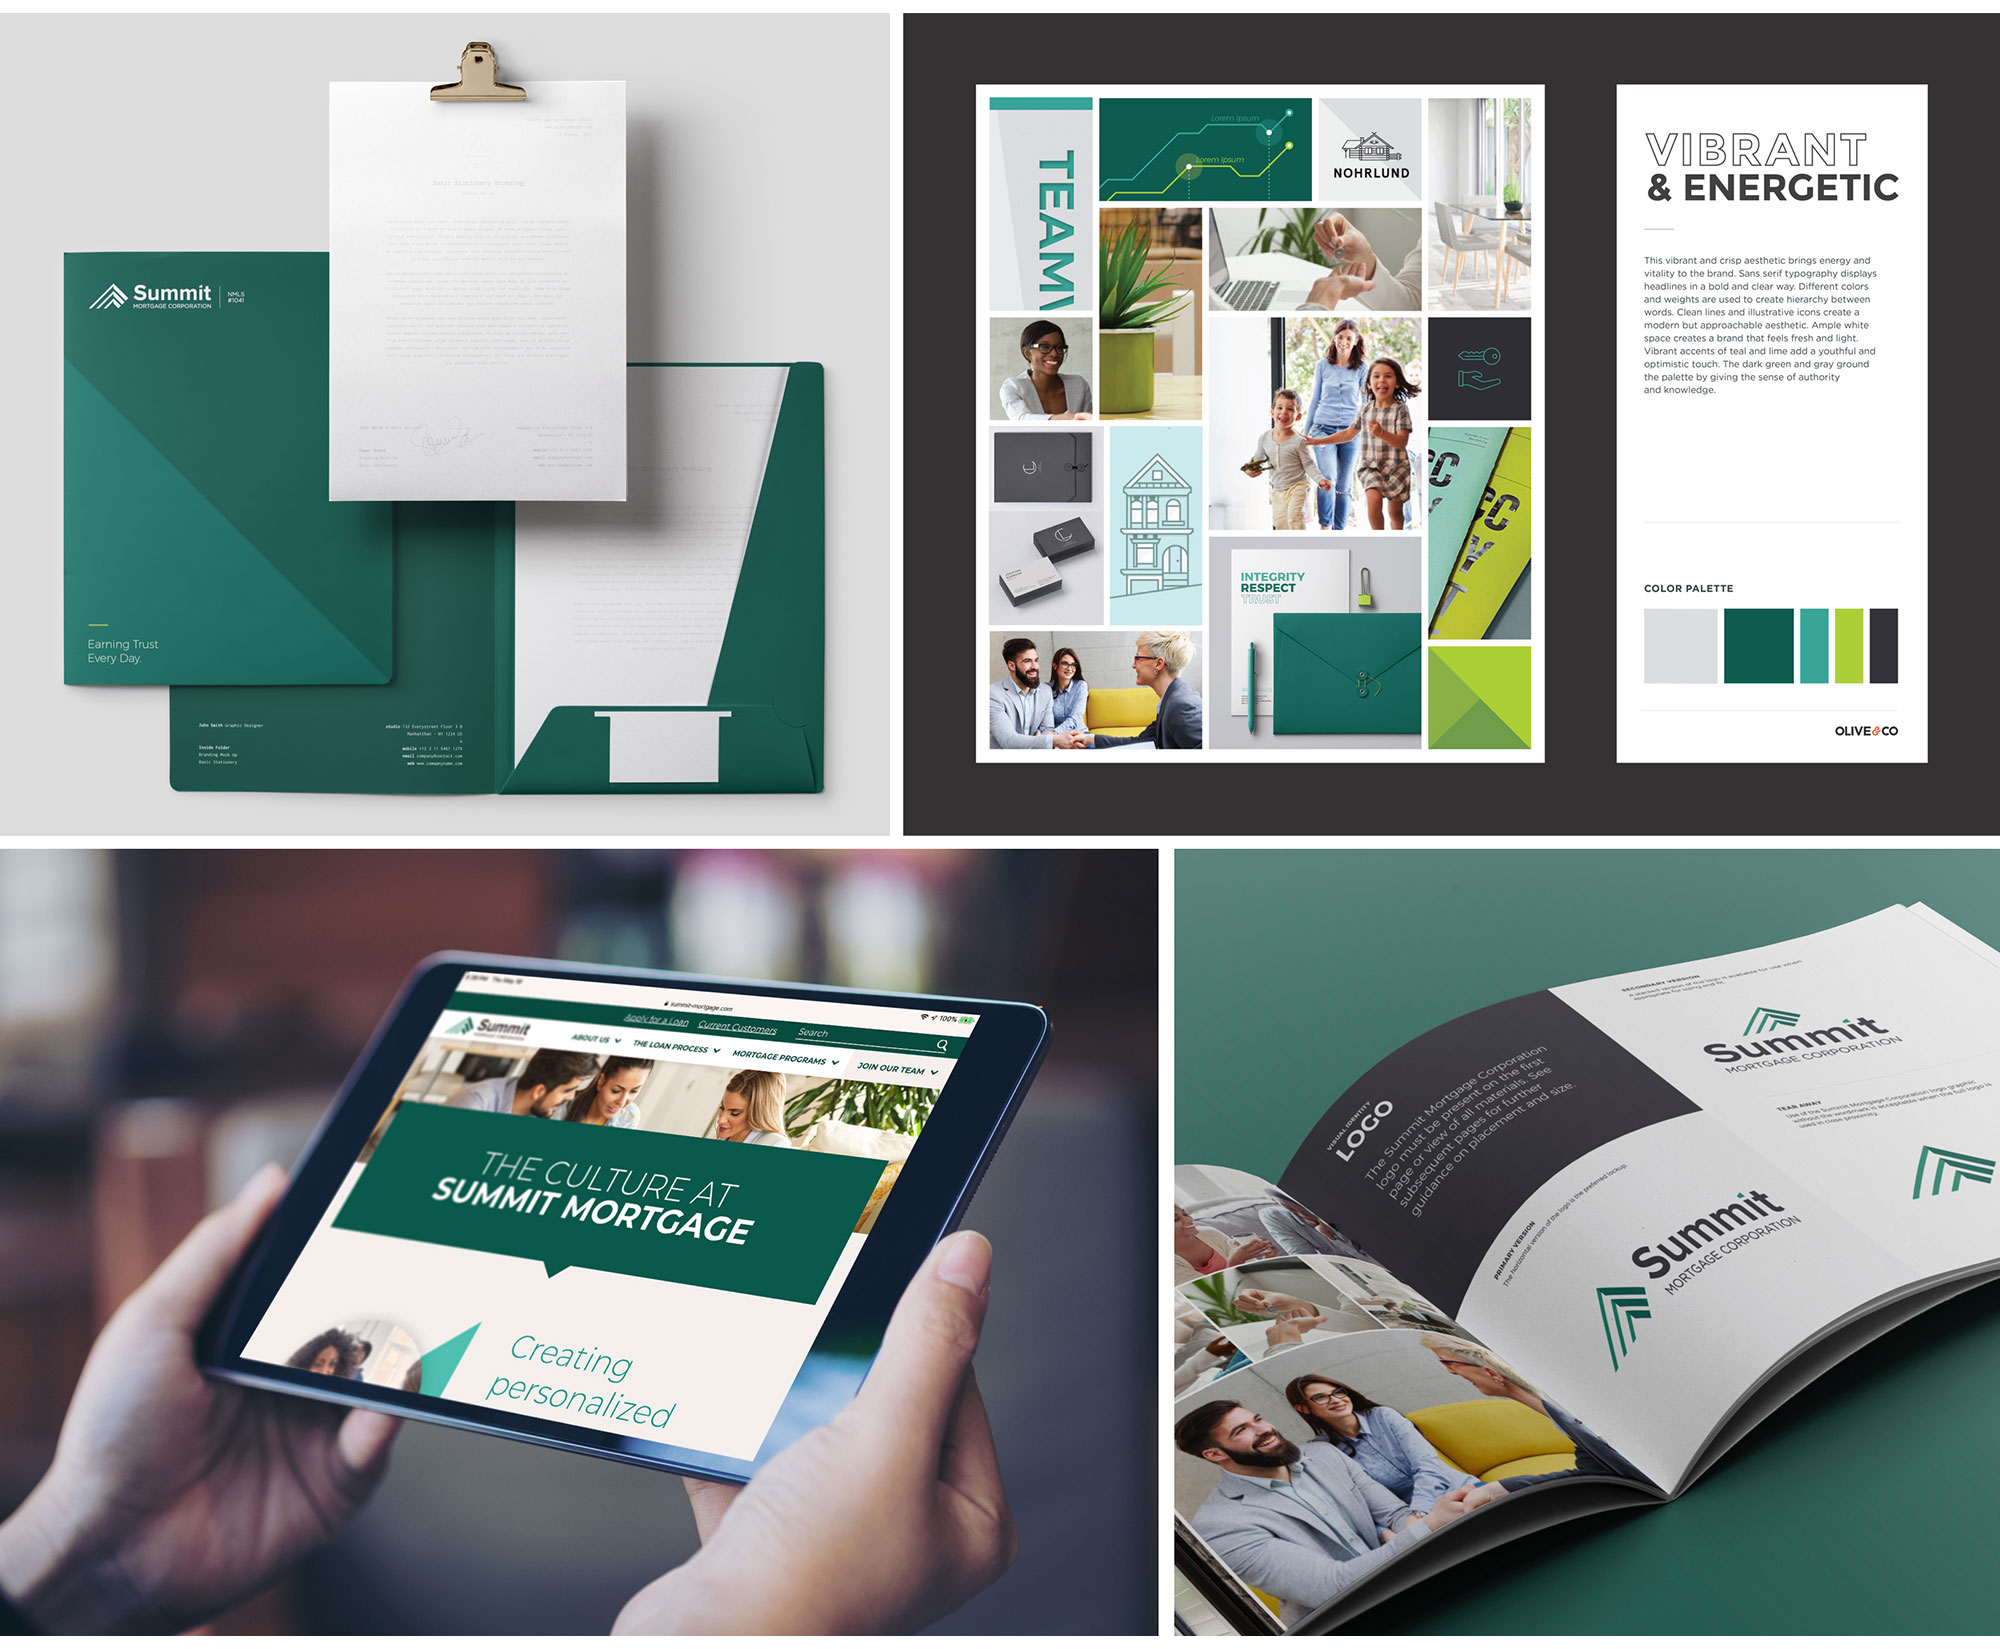 A selection of Olive & Company's brand work for Summit Mortgage.